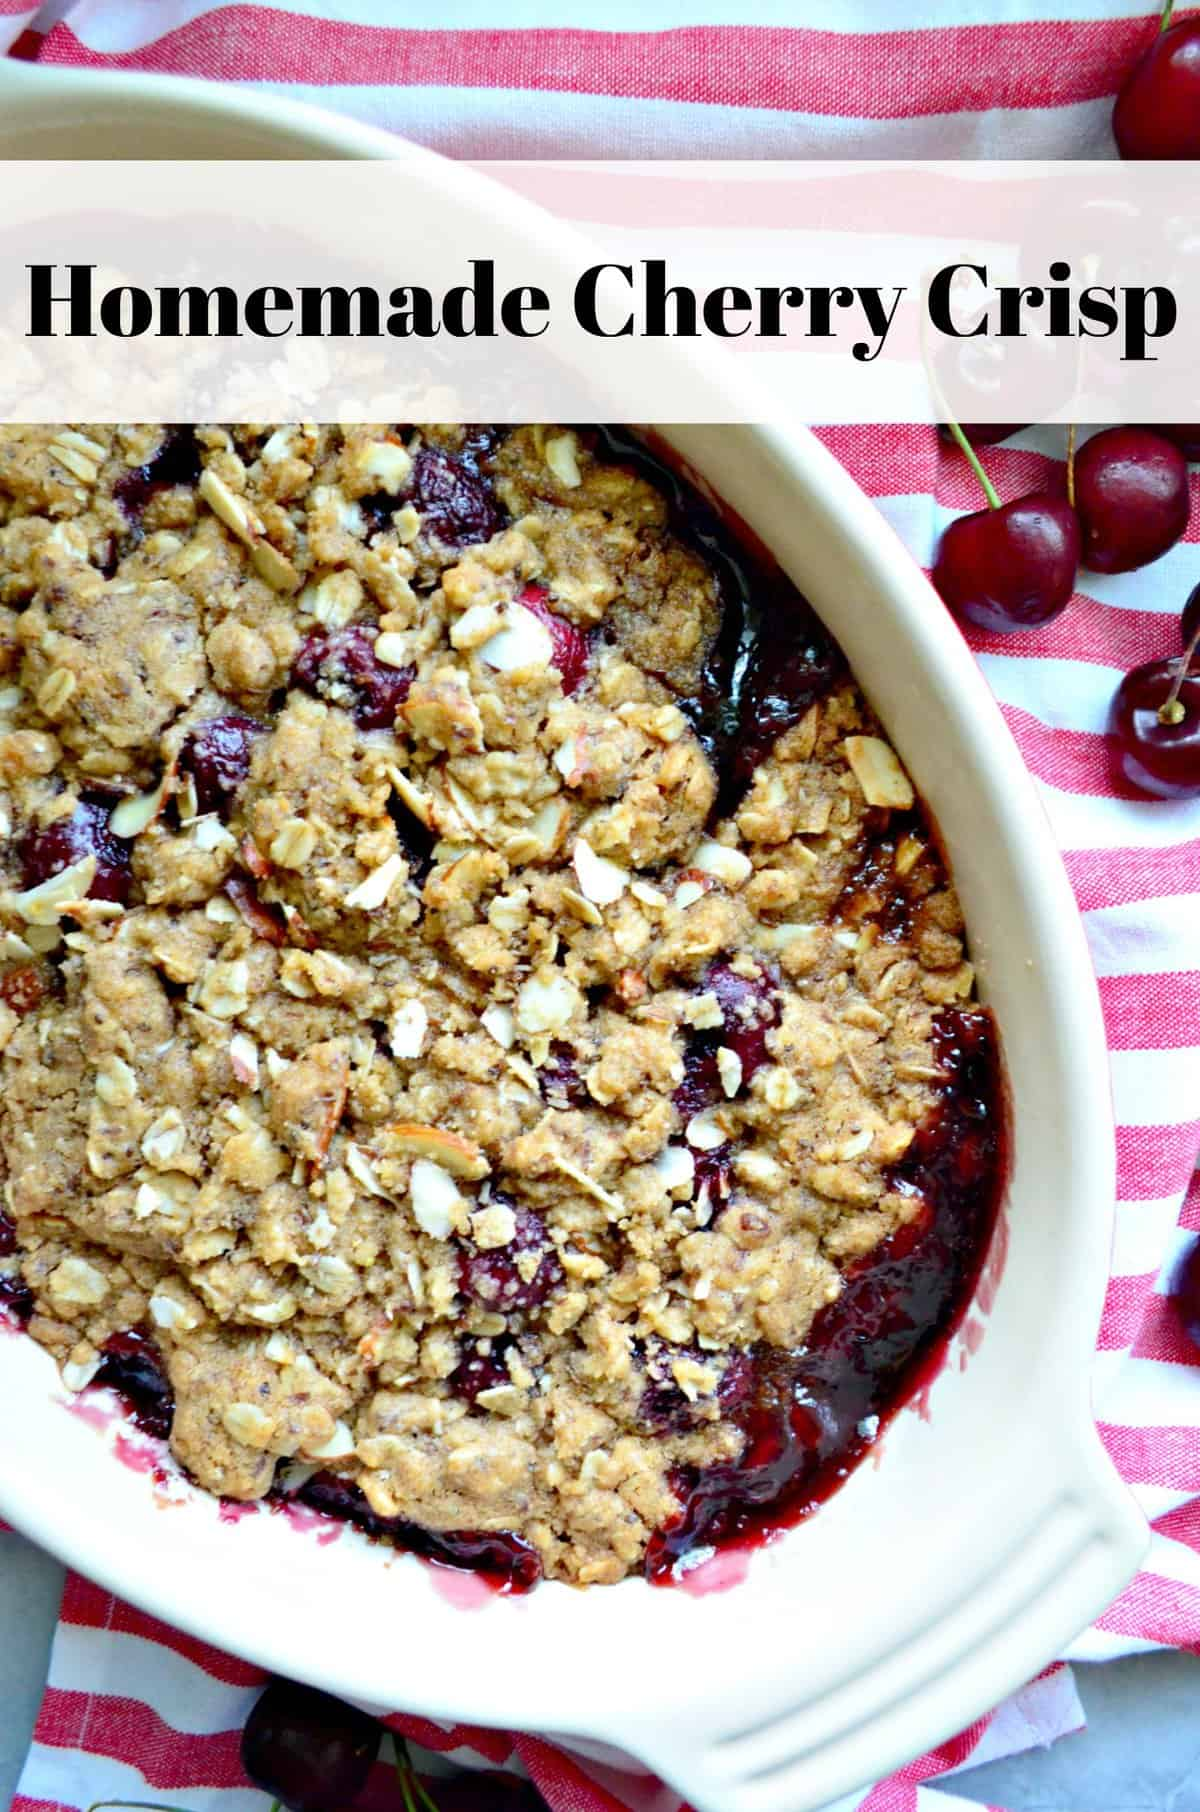 Overhead view of cherry crisp with sliced almonds on a red and white striped cloth with text.